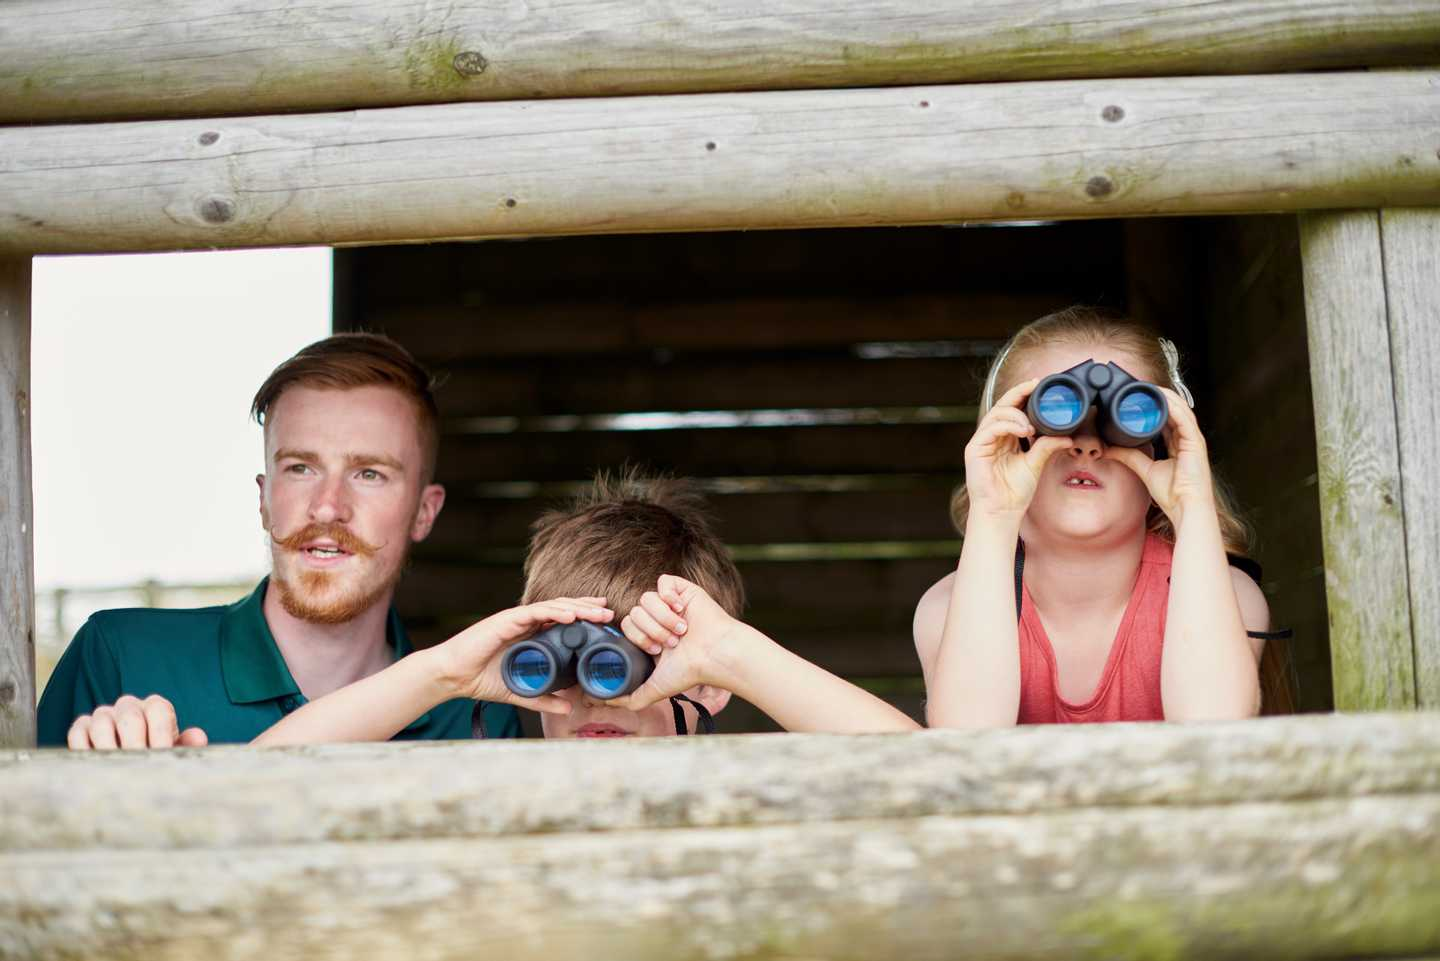 Guests watching birds from the hive through binoculars